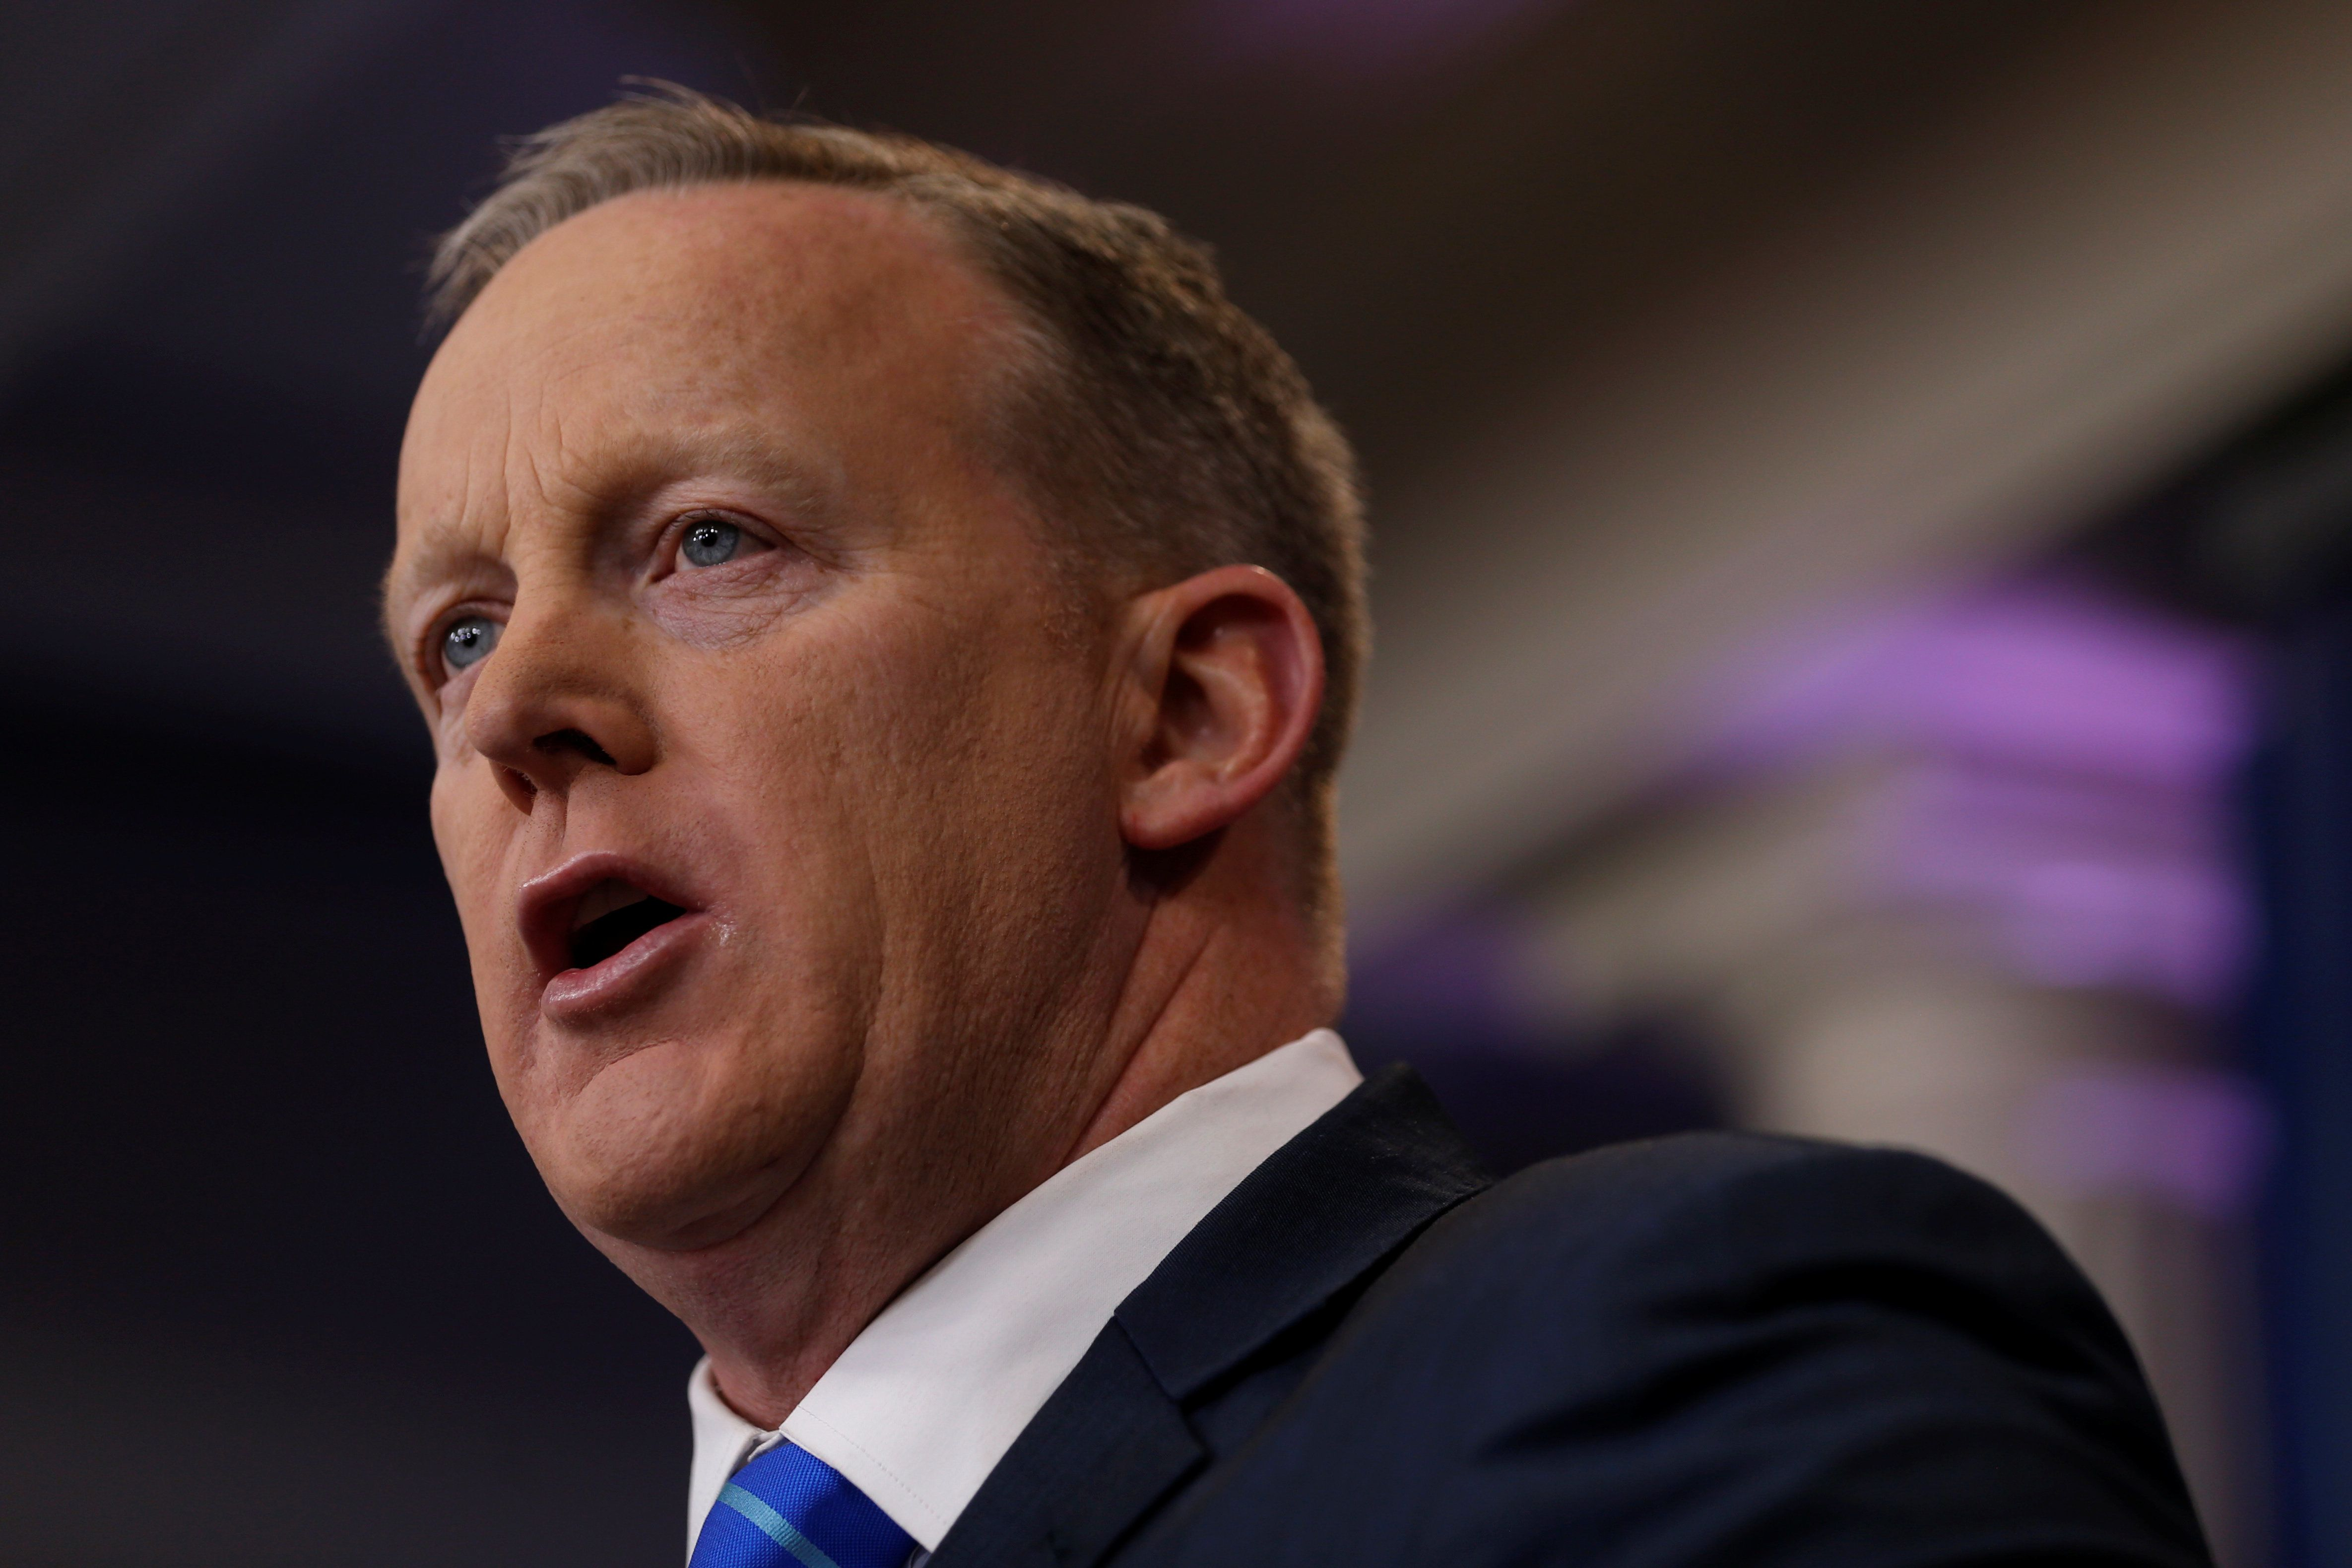 Sean Spicer: Portrait Of A Man On